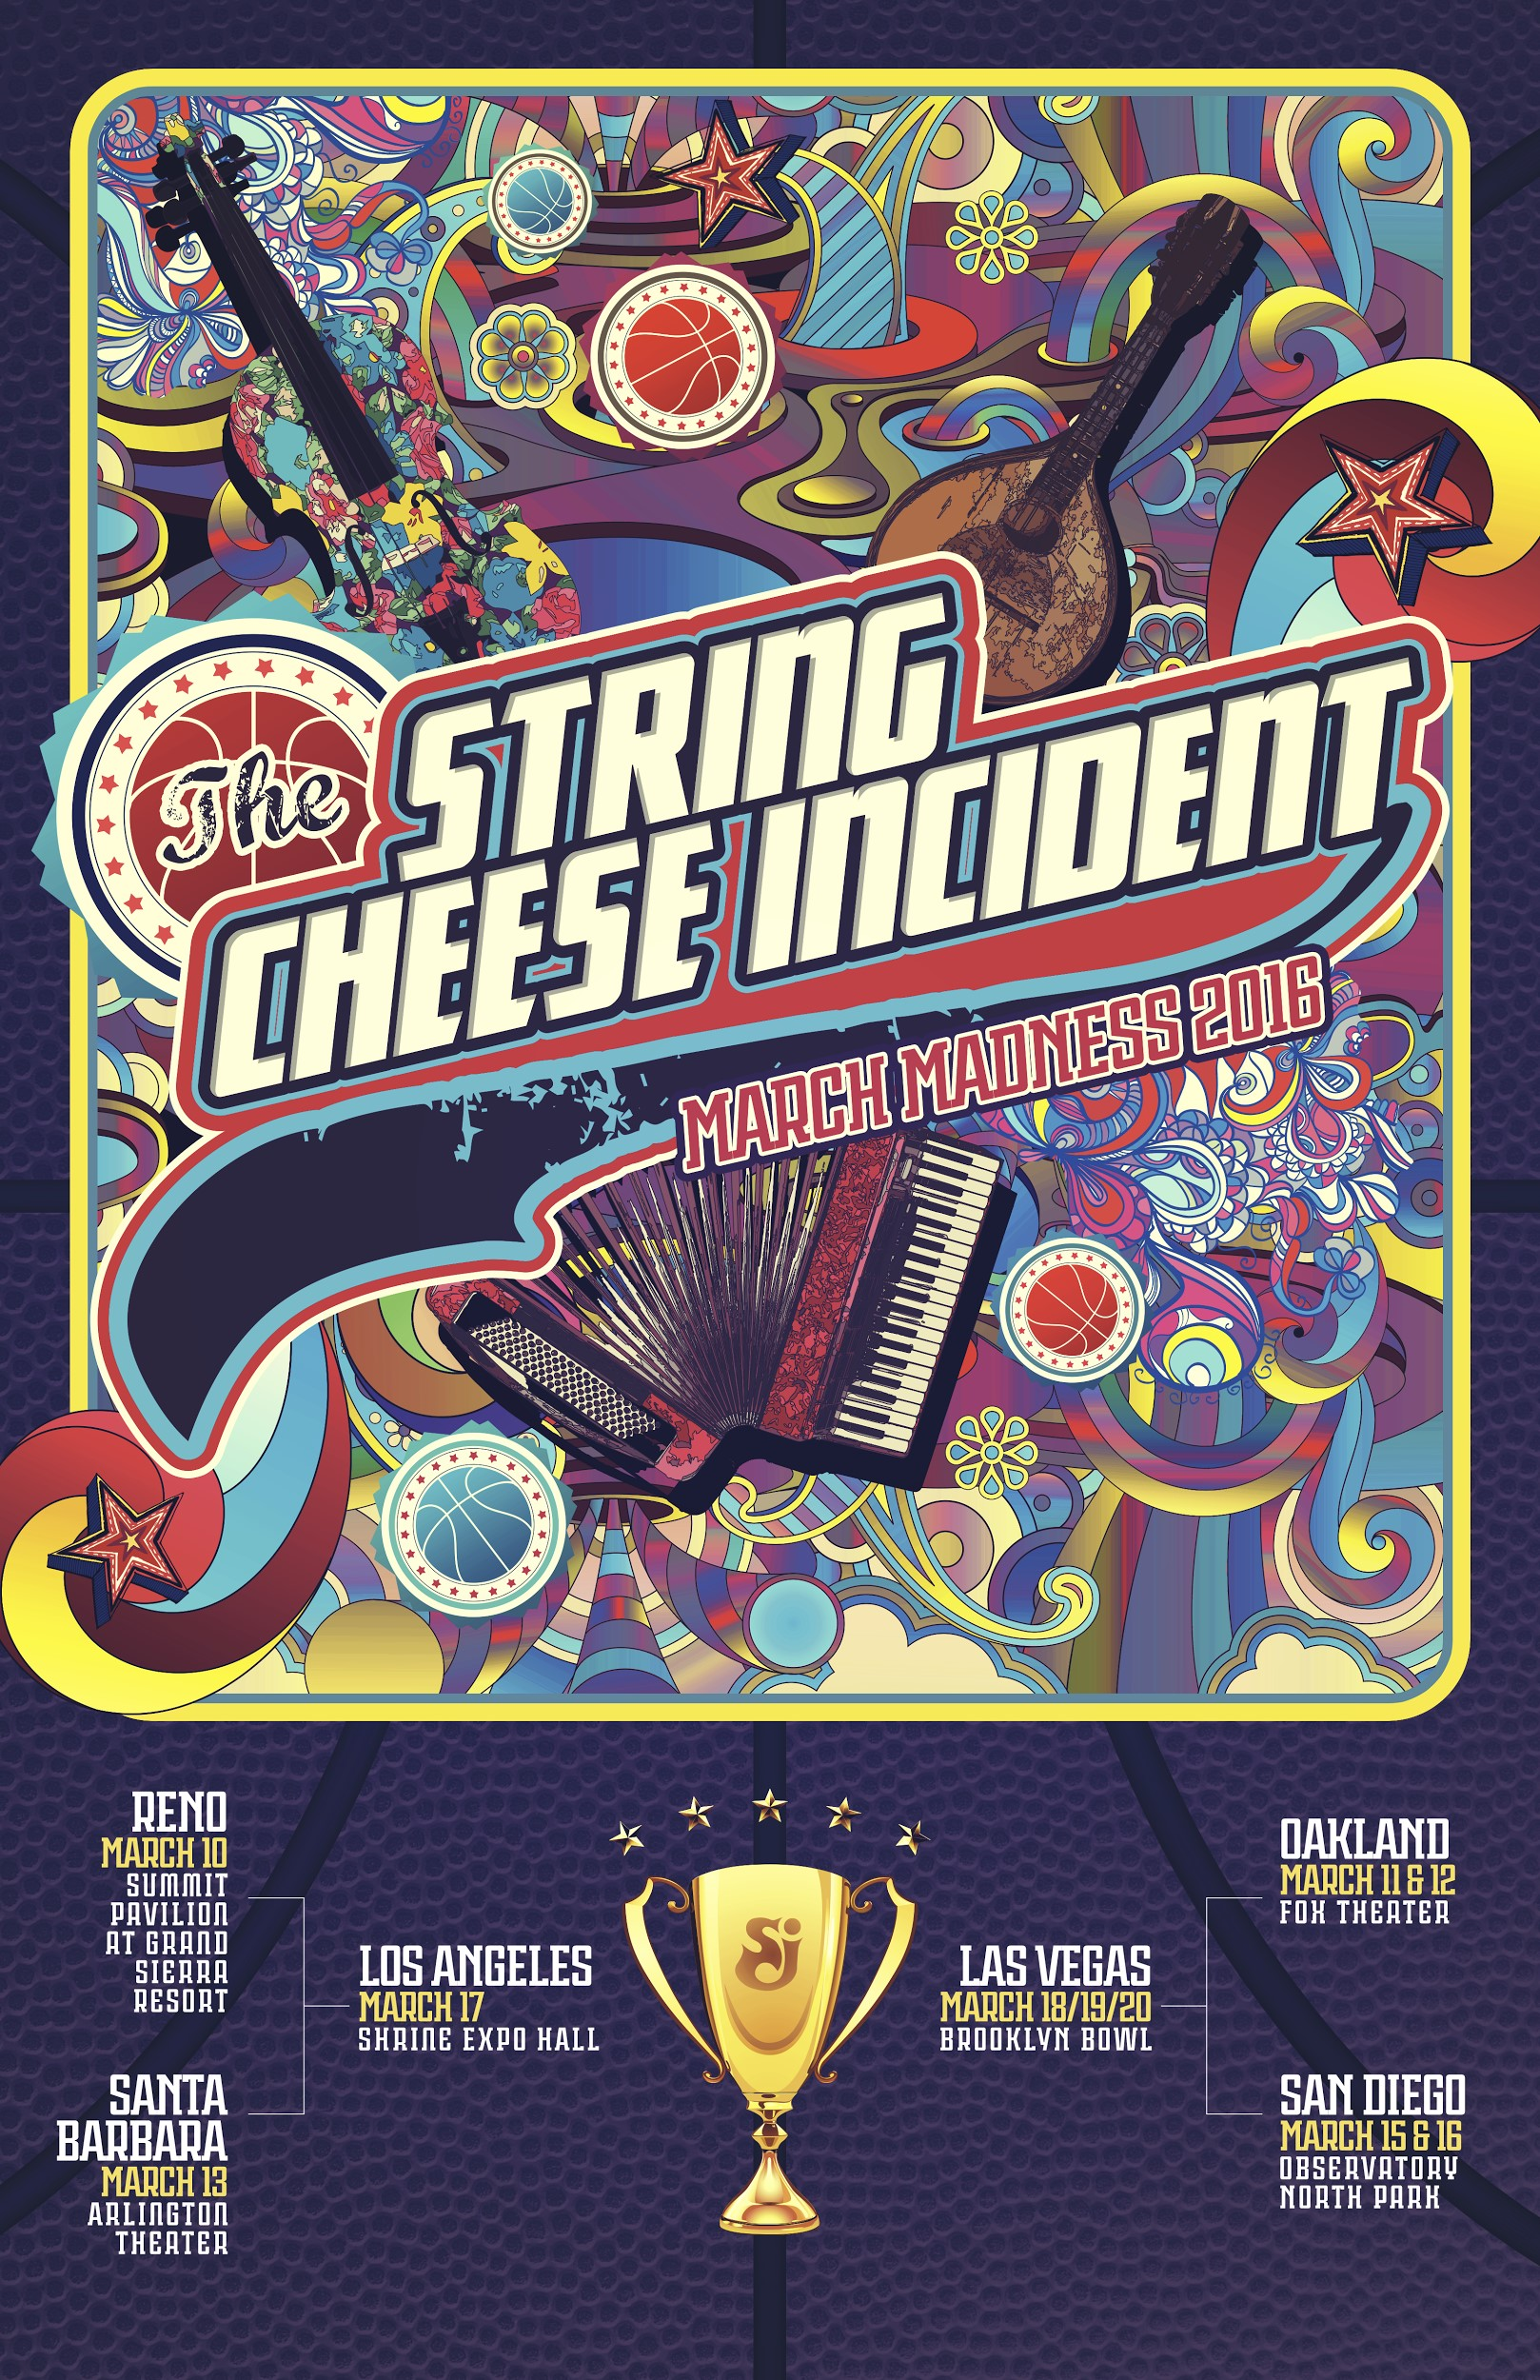 String Cheese Incident Announces March Madness Tour